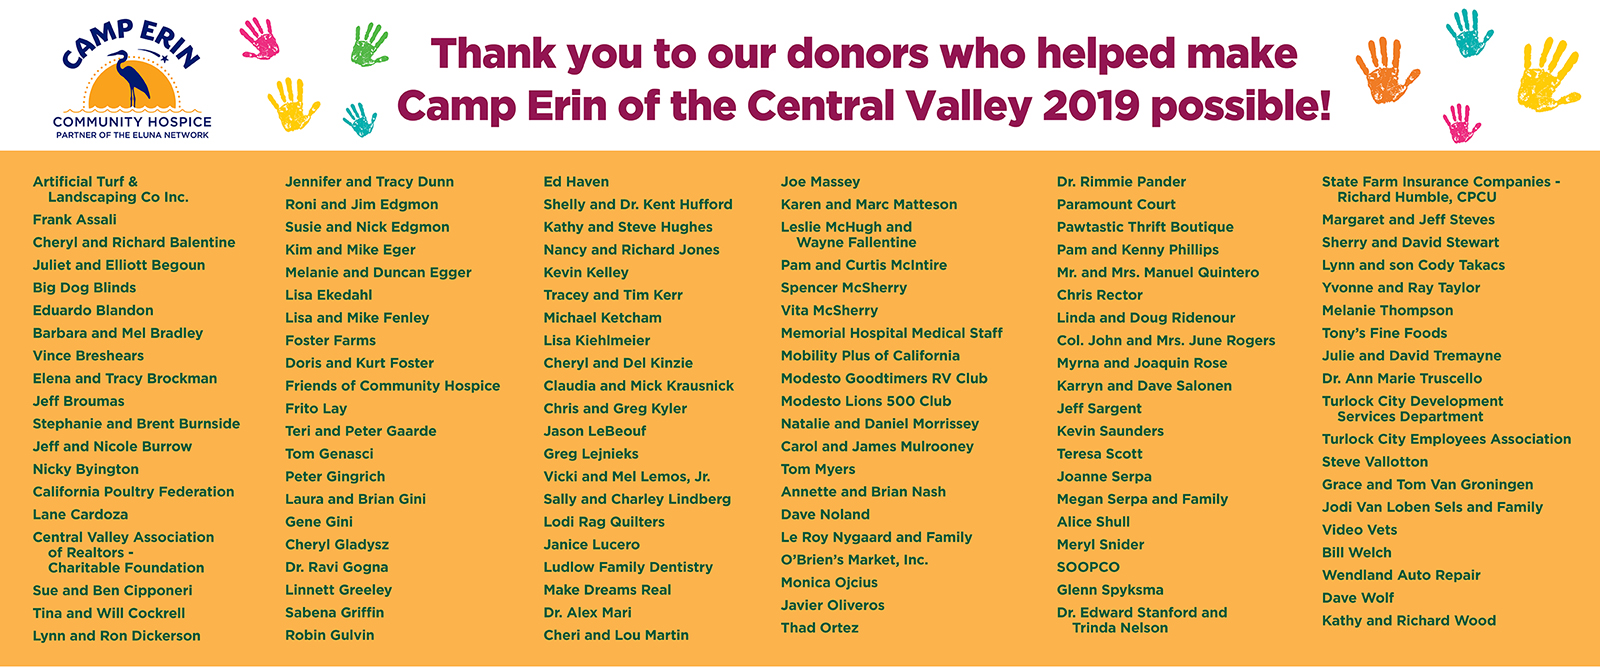 Camp Erin® of the Central Valley - Camp Erin of the Central Valley